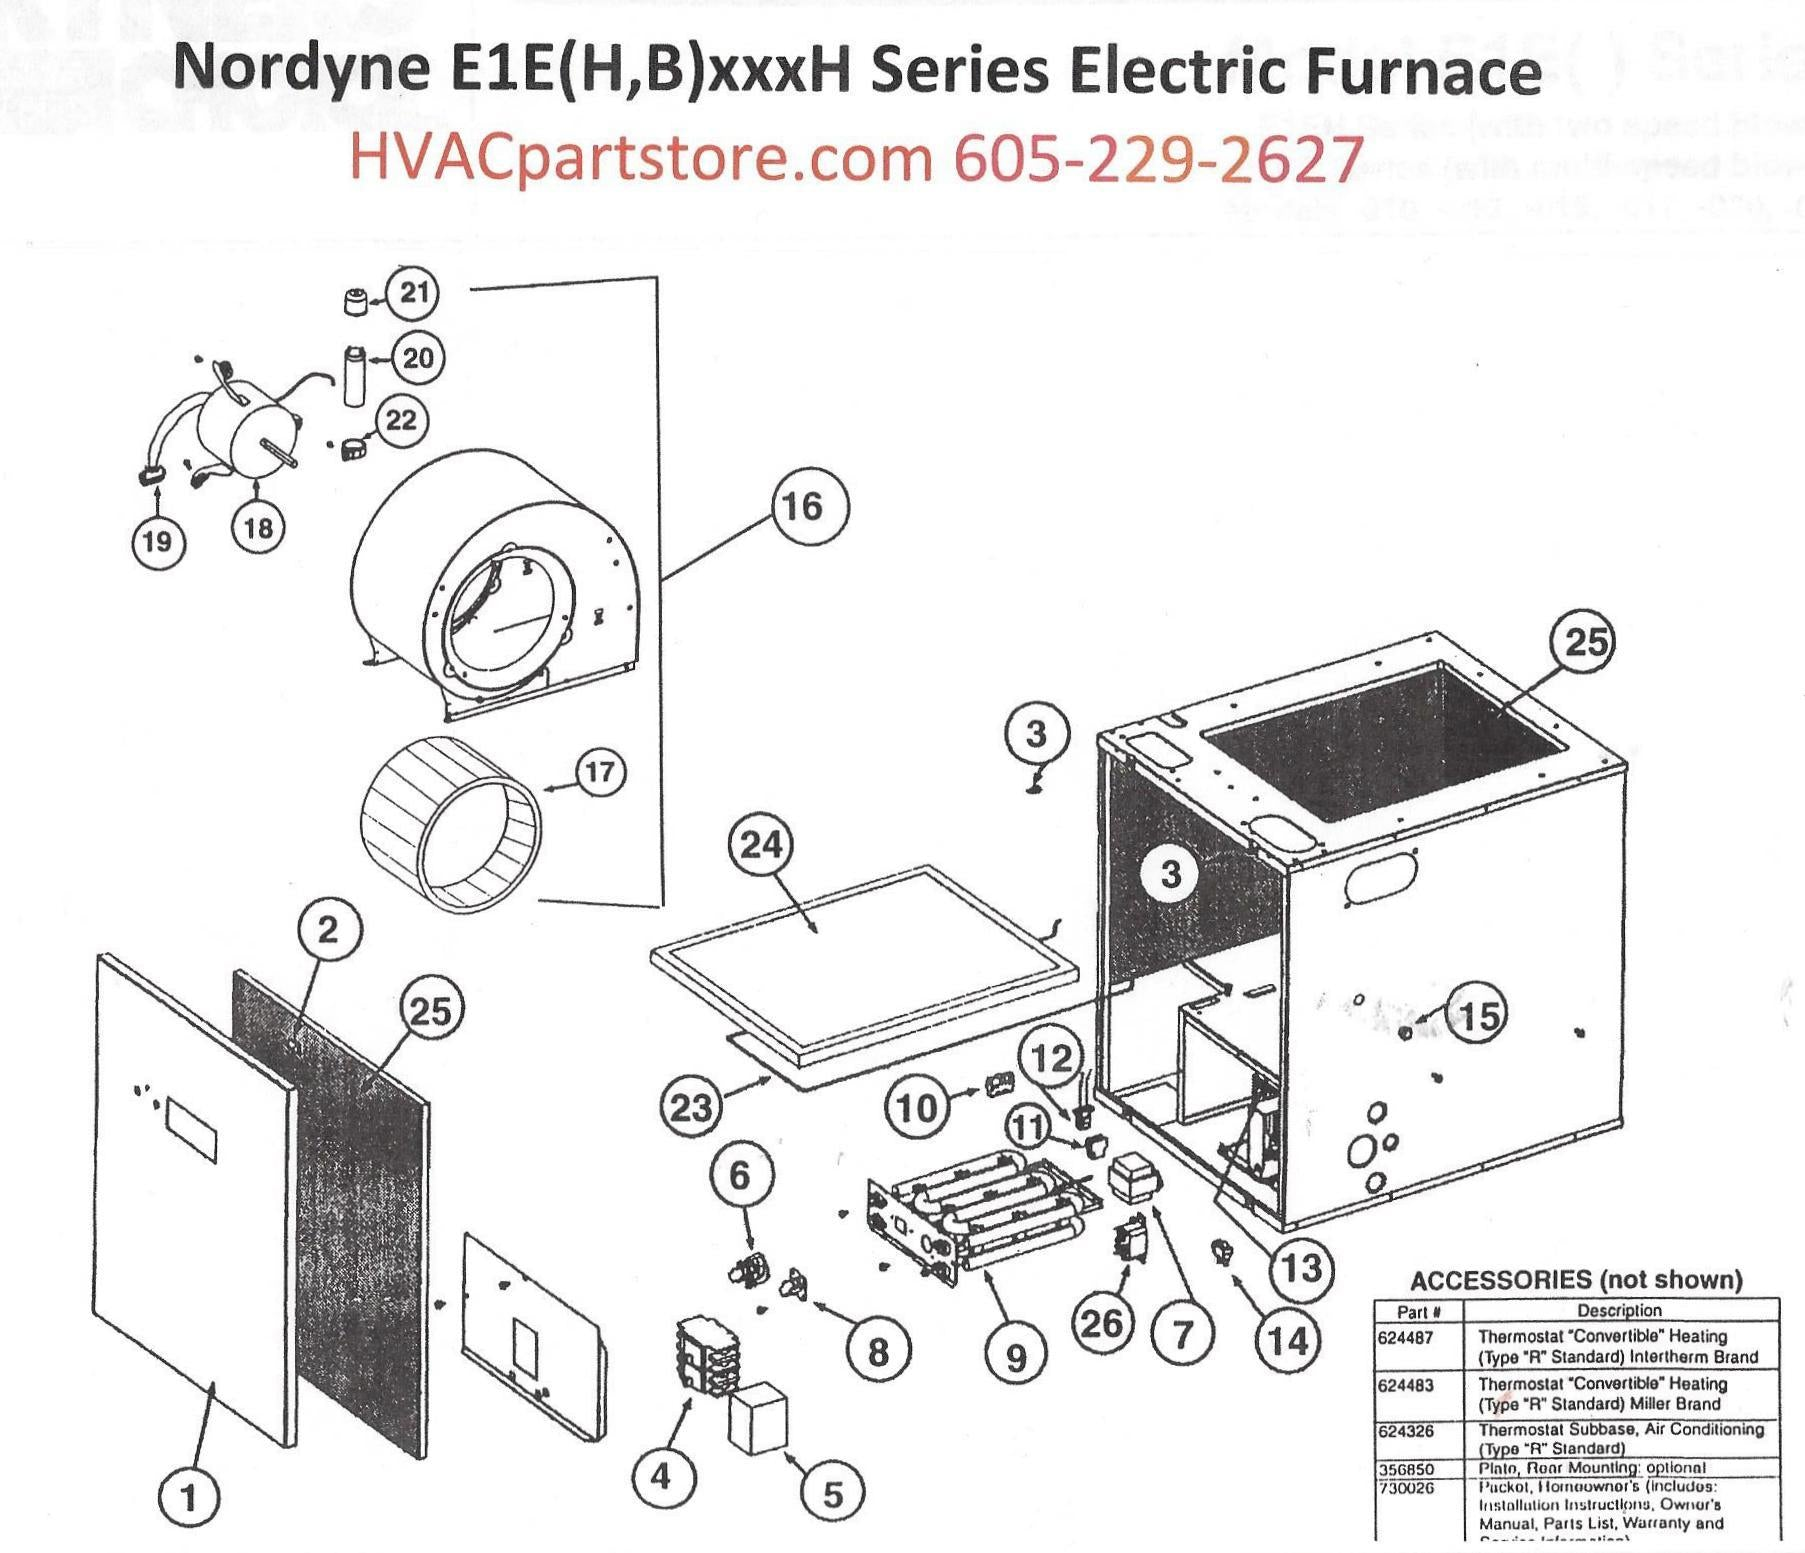 E1eh017h Nordyne Electric Furnace Parts on wiring diagram electric door strike